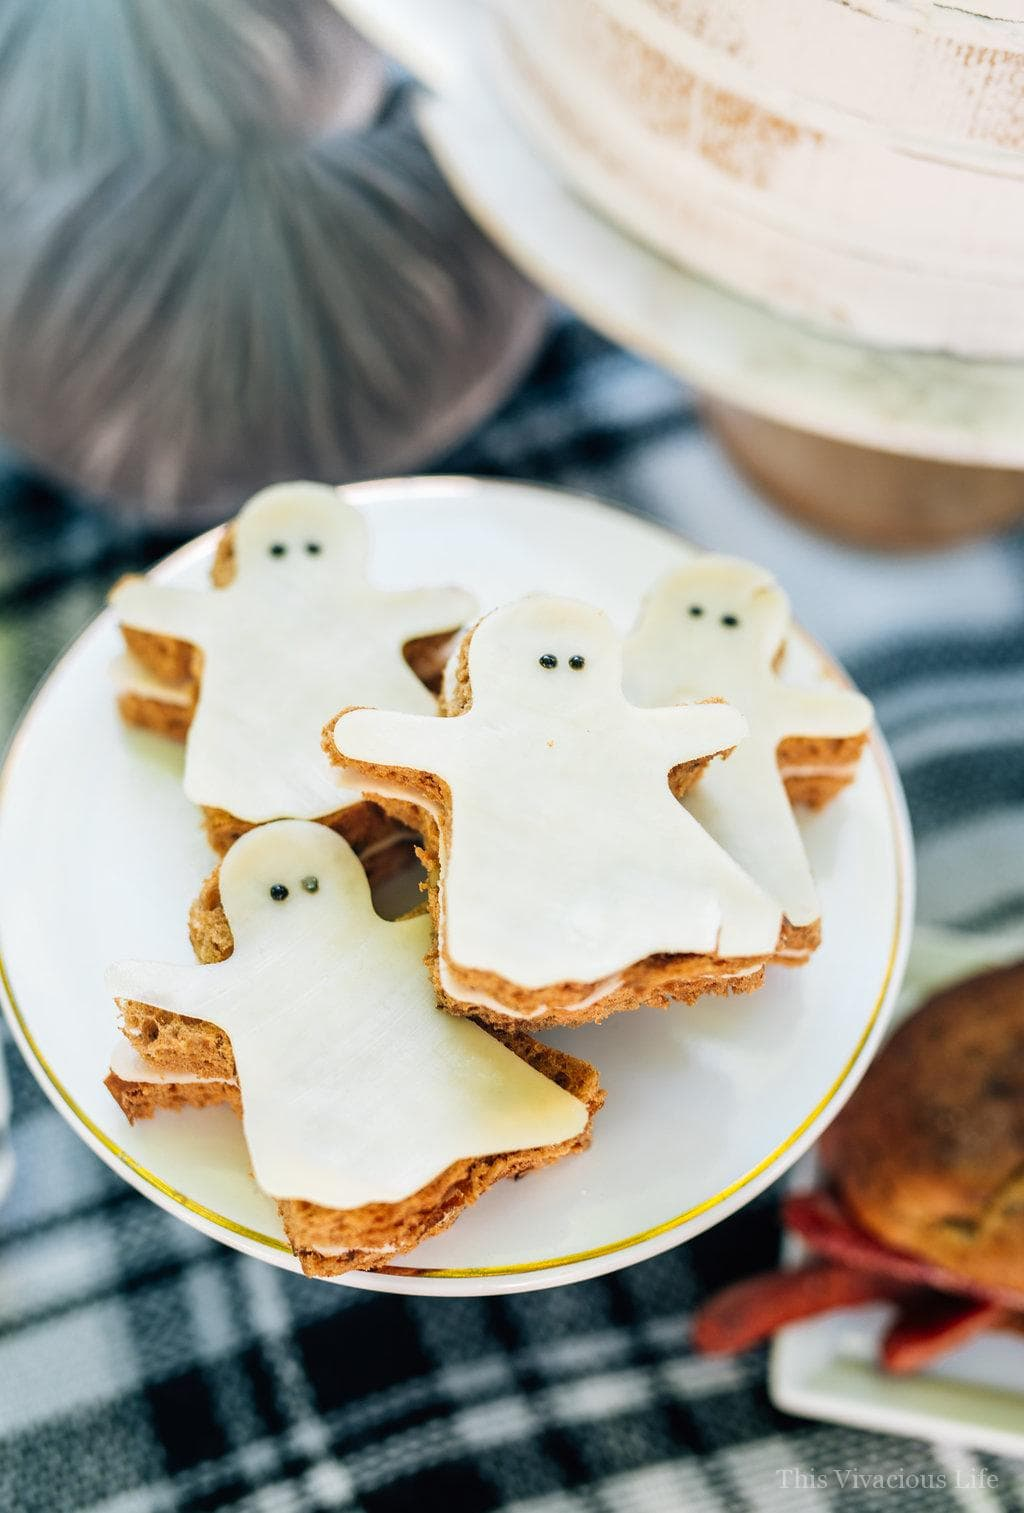 This spooky sandwich bar Halloween party is such a fun one especially for little ones. They will love the variety of fun sandwiches and eerie decor.